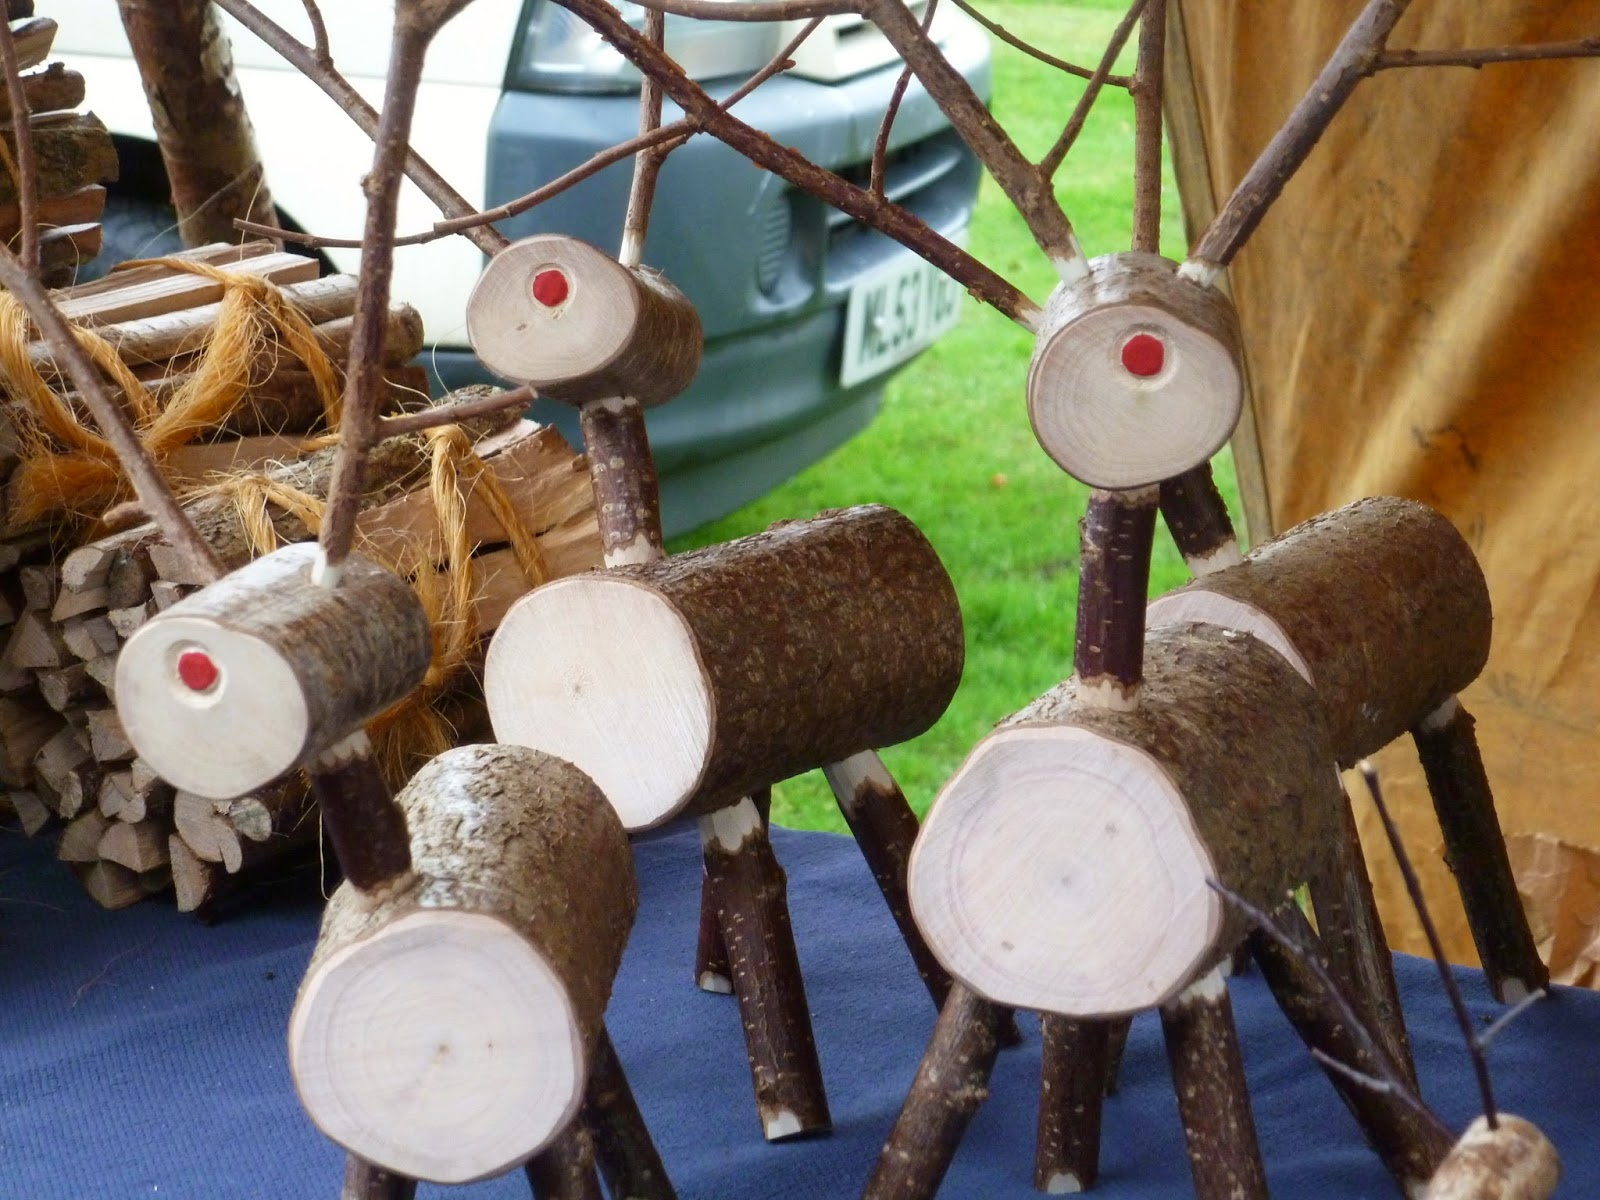 Farmers market stall reindeers made out of tree stumps